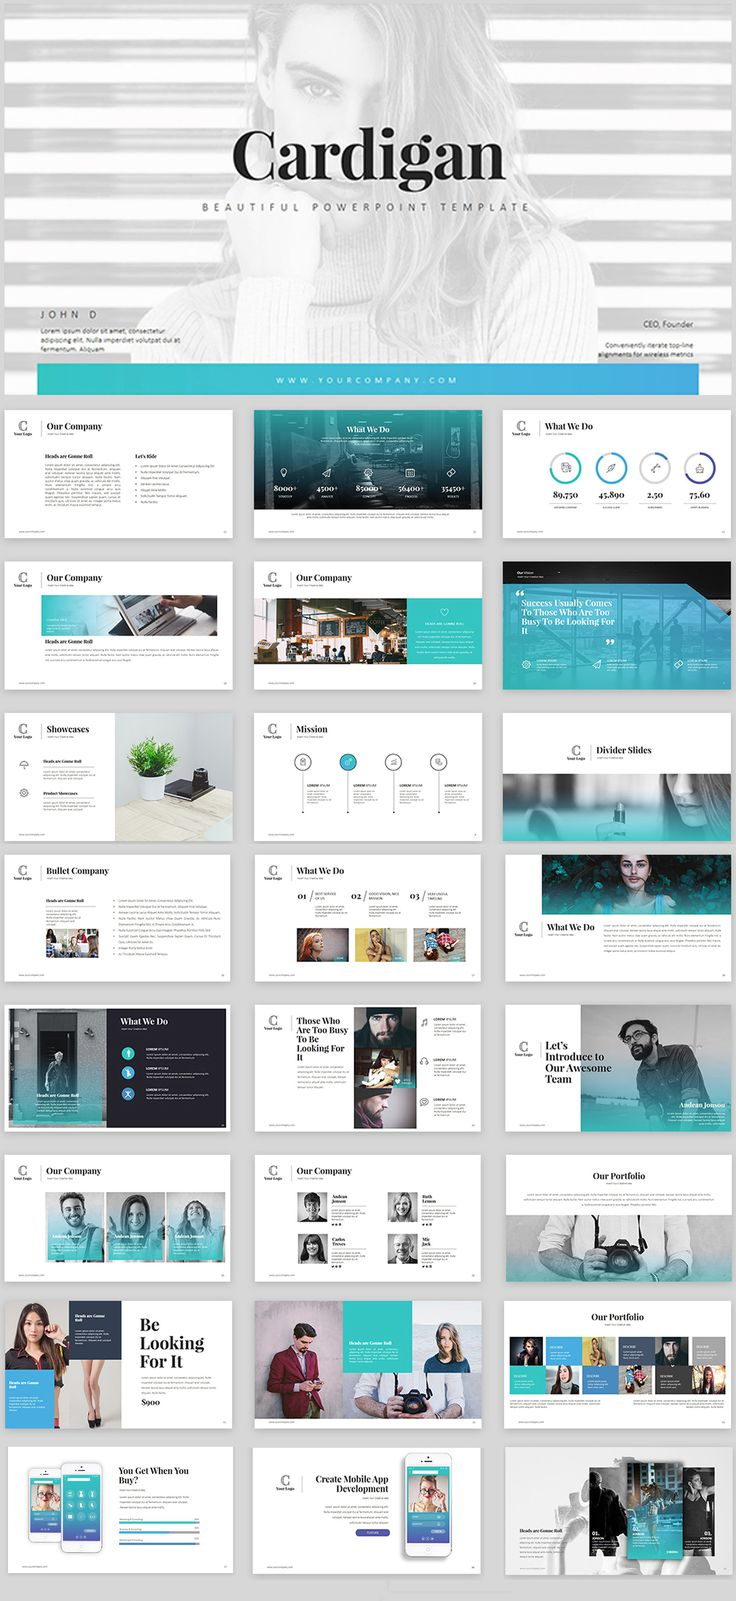 121 best business powerpoint templates images on pinterest cardigan powerpoint template powerpoint template accmission Gallery